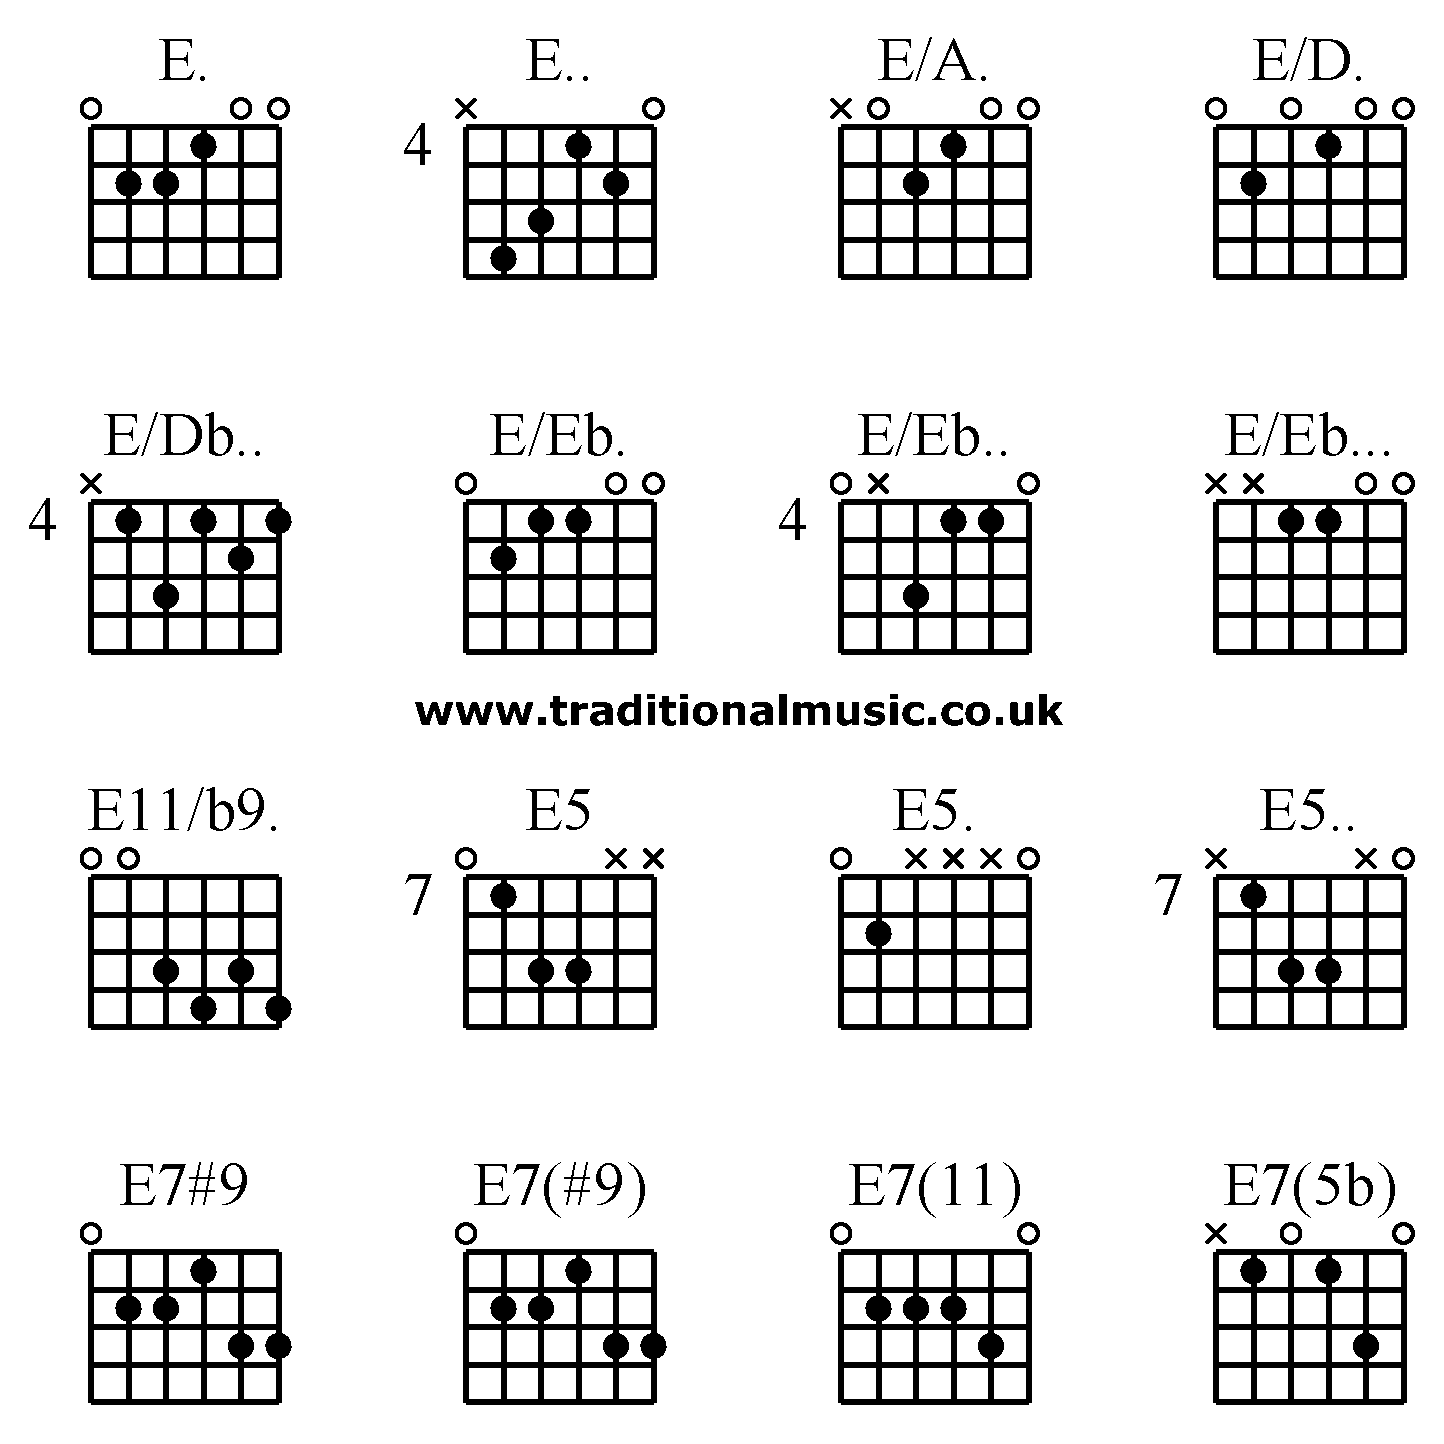 Guitar Chords Advanced E E Ea Ed Edb Eeb Eeb Eeb E11